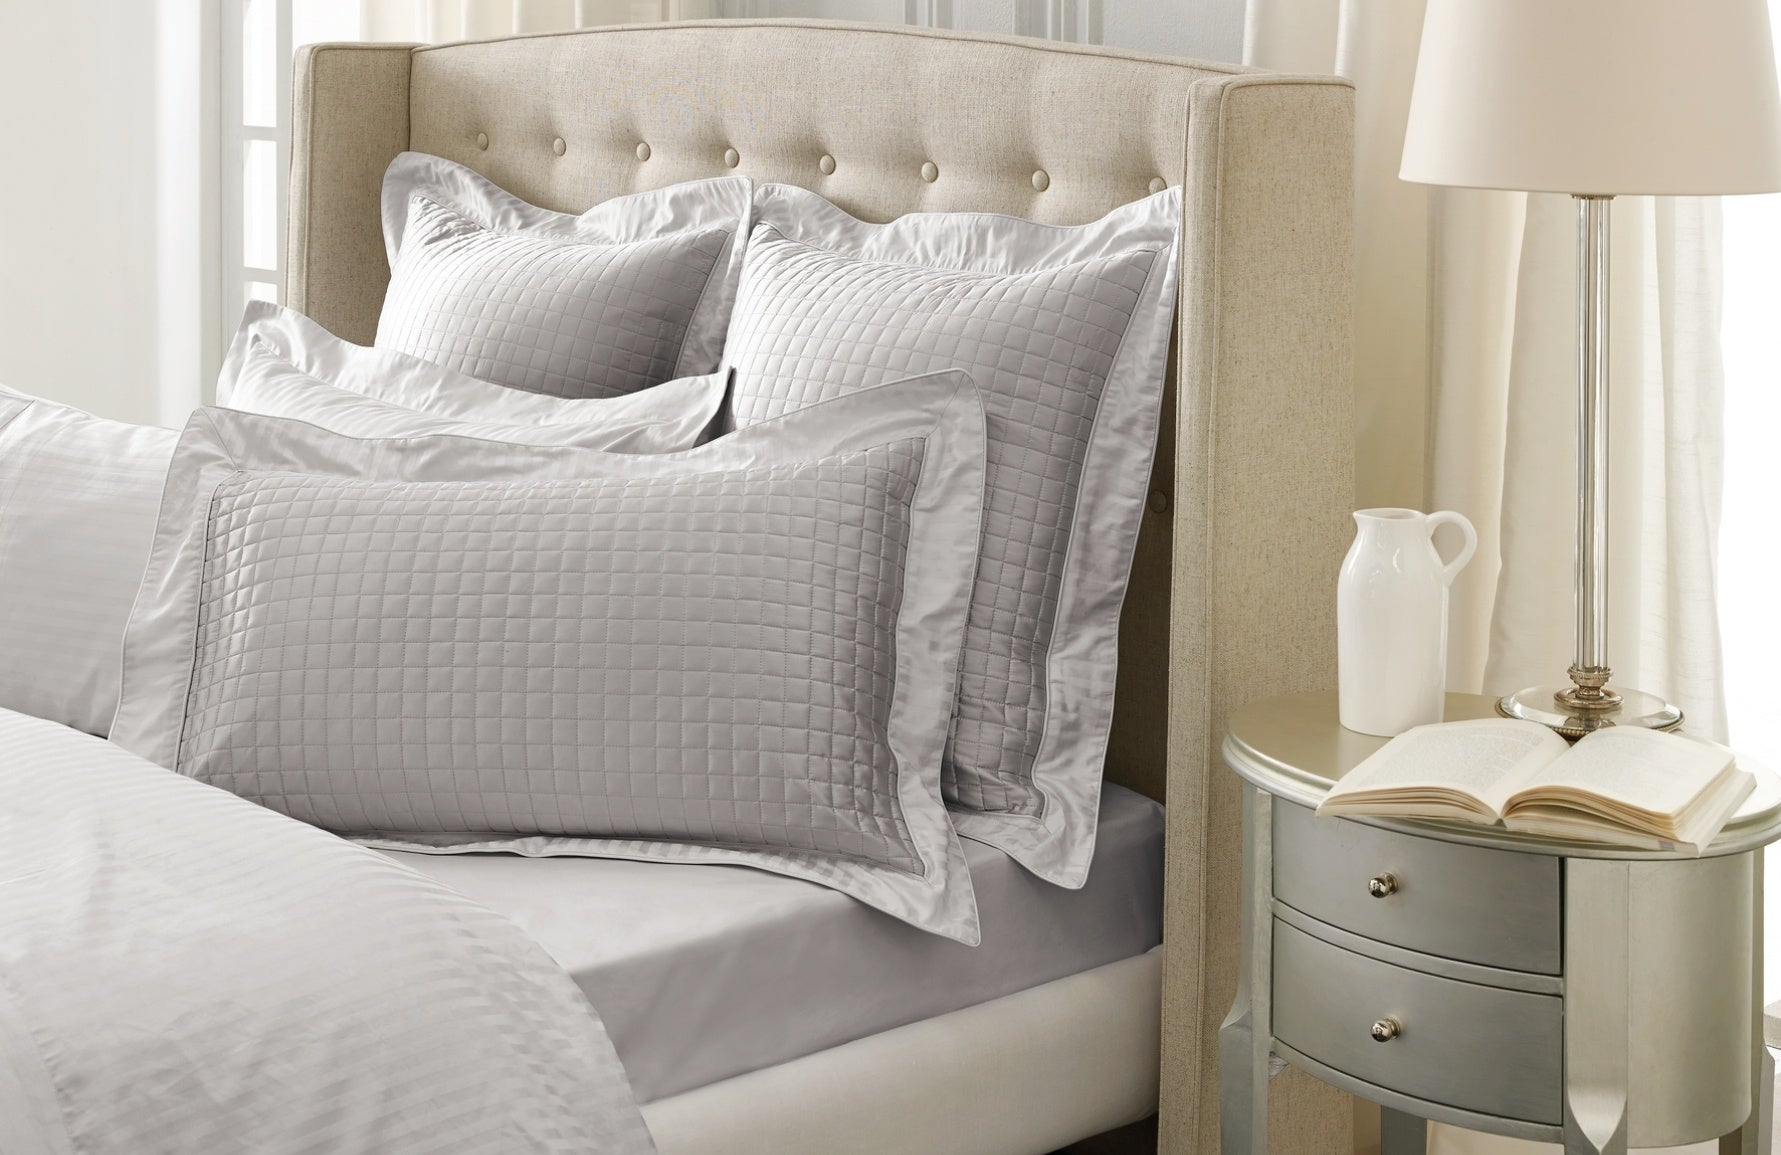 How to choose the right duvet